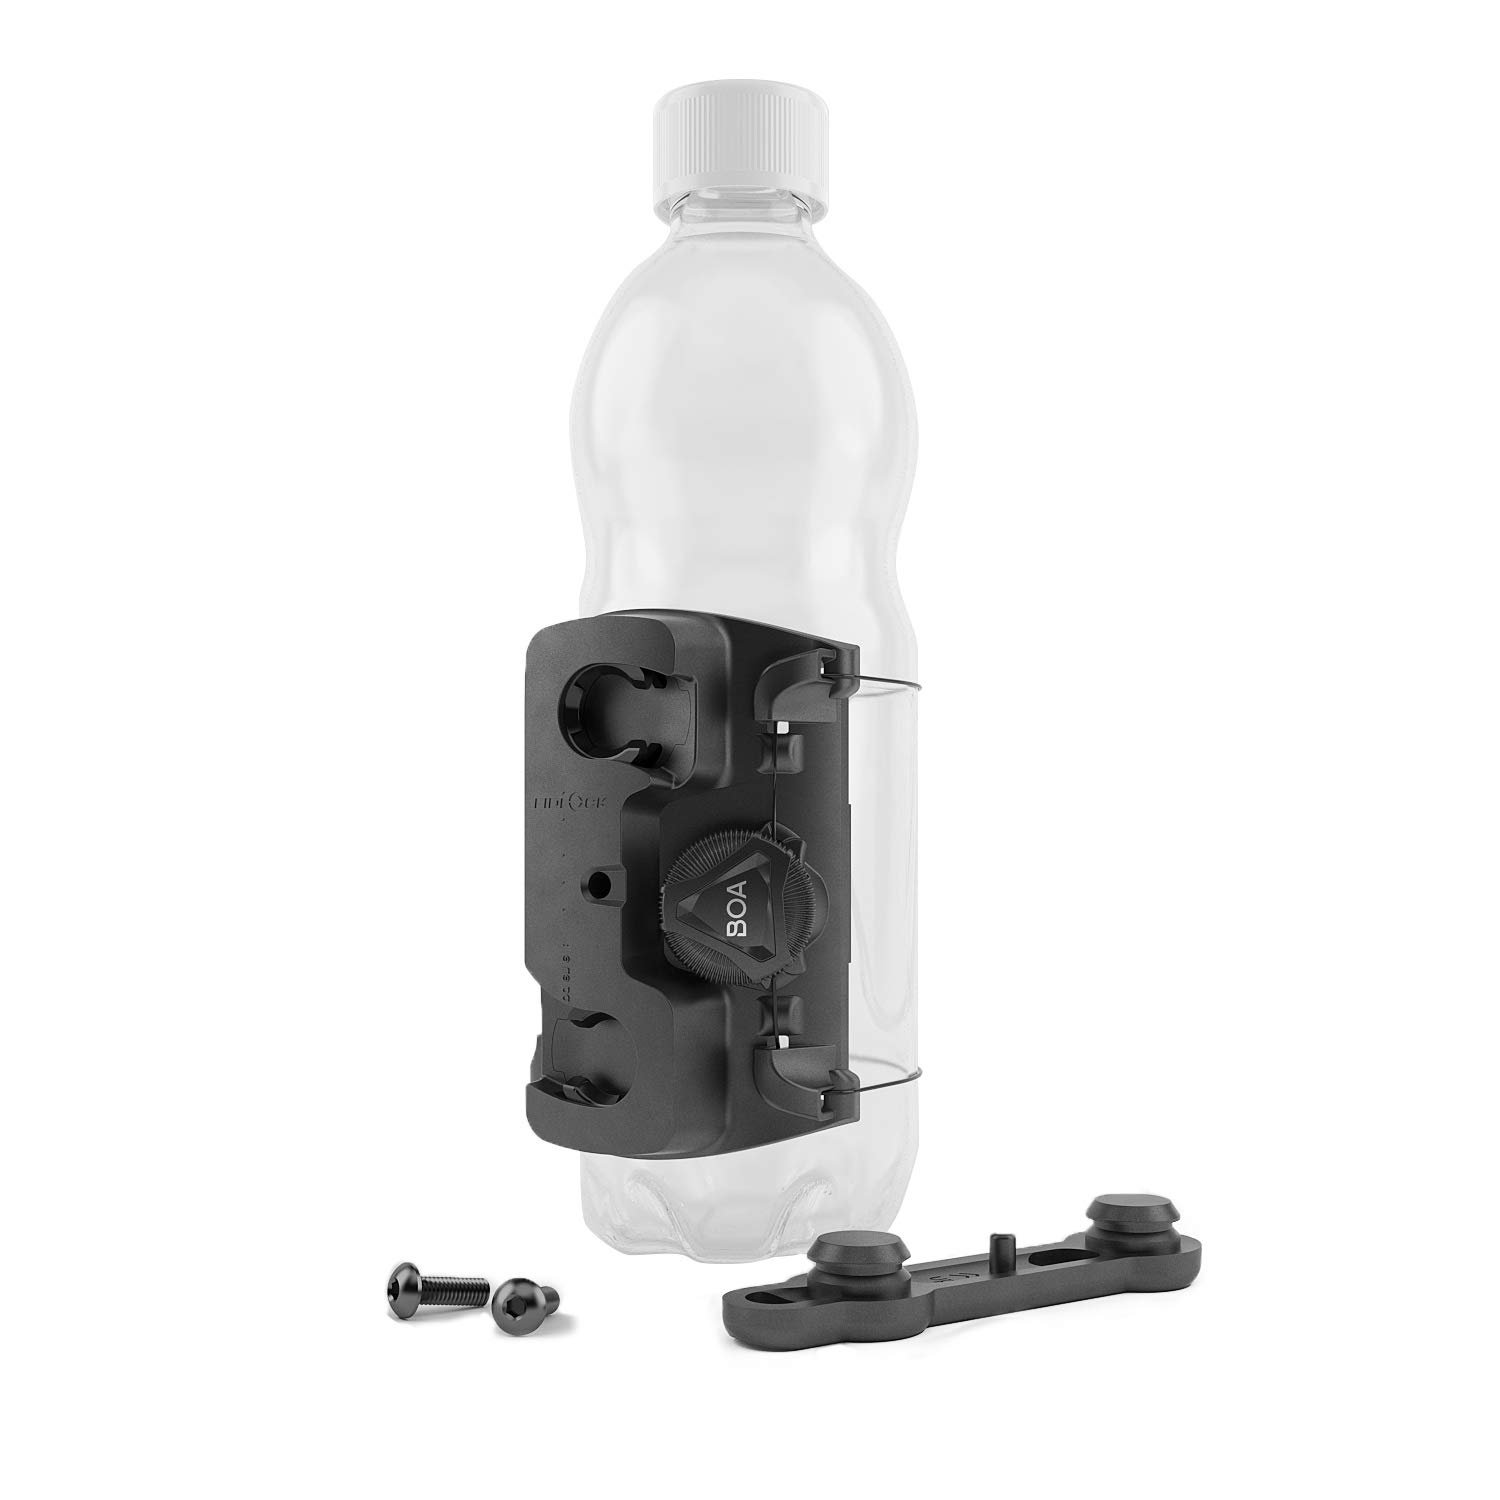 Fidlock Uni Connector Universal Bike Water Bottle Holder for Plastic Bottles or Accessories with Diameter up to 80 mm. Includes Twist Bike Base by FIDLOCK